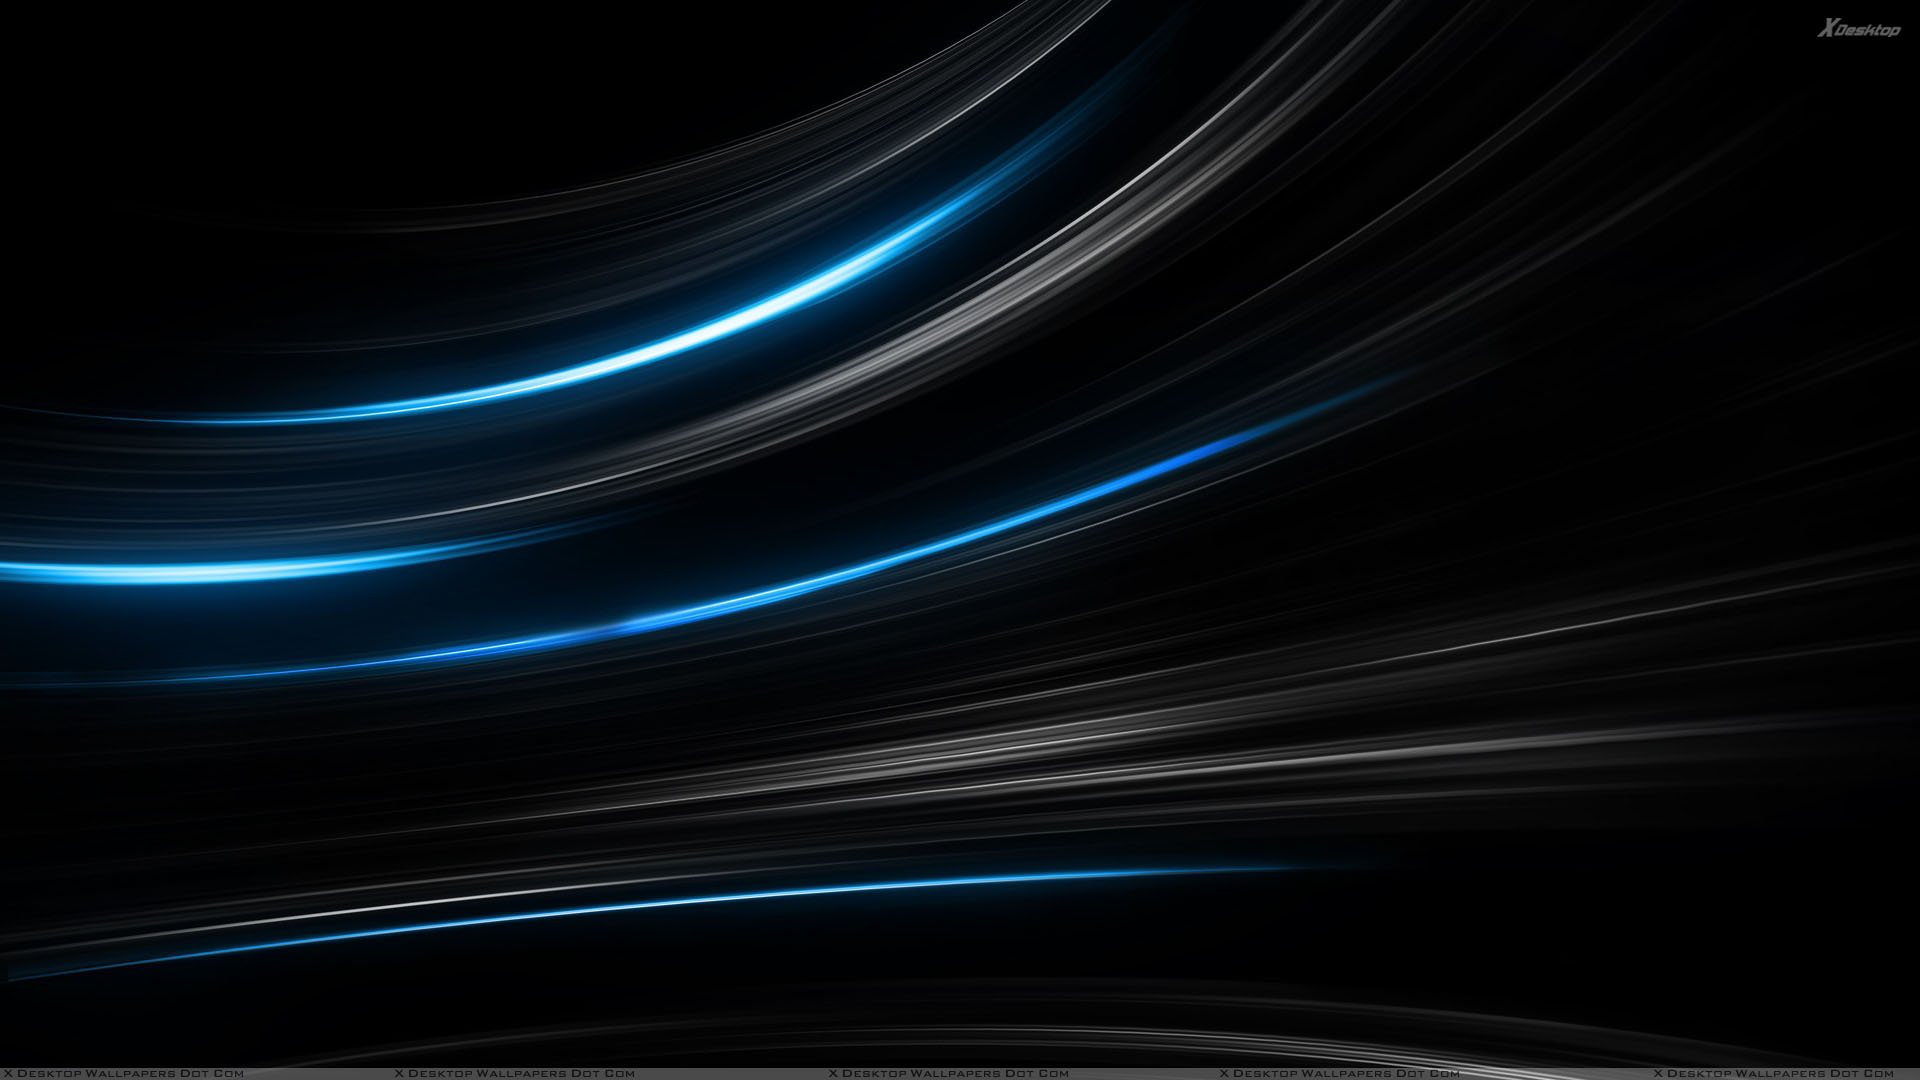 Blue And Black Shade Background Wallpaper 1920x1080